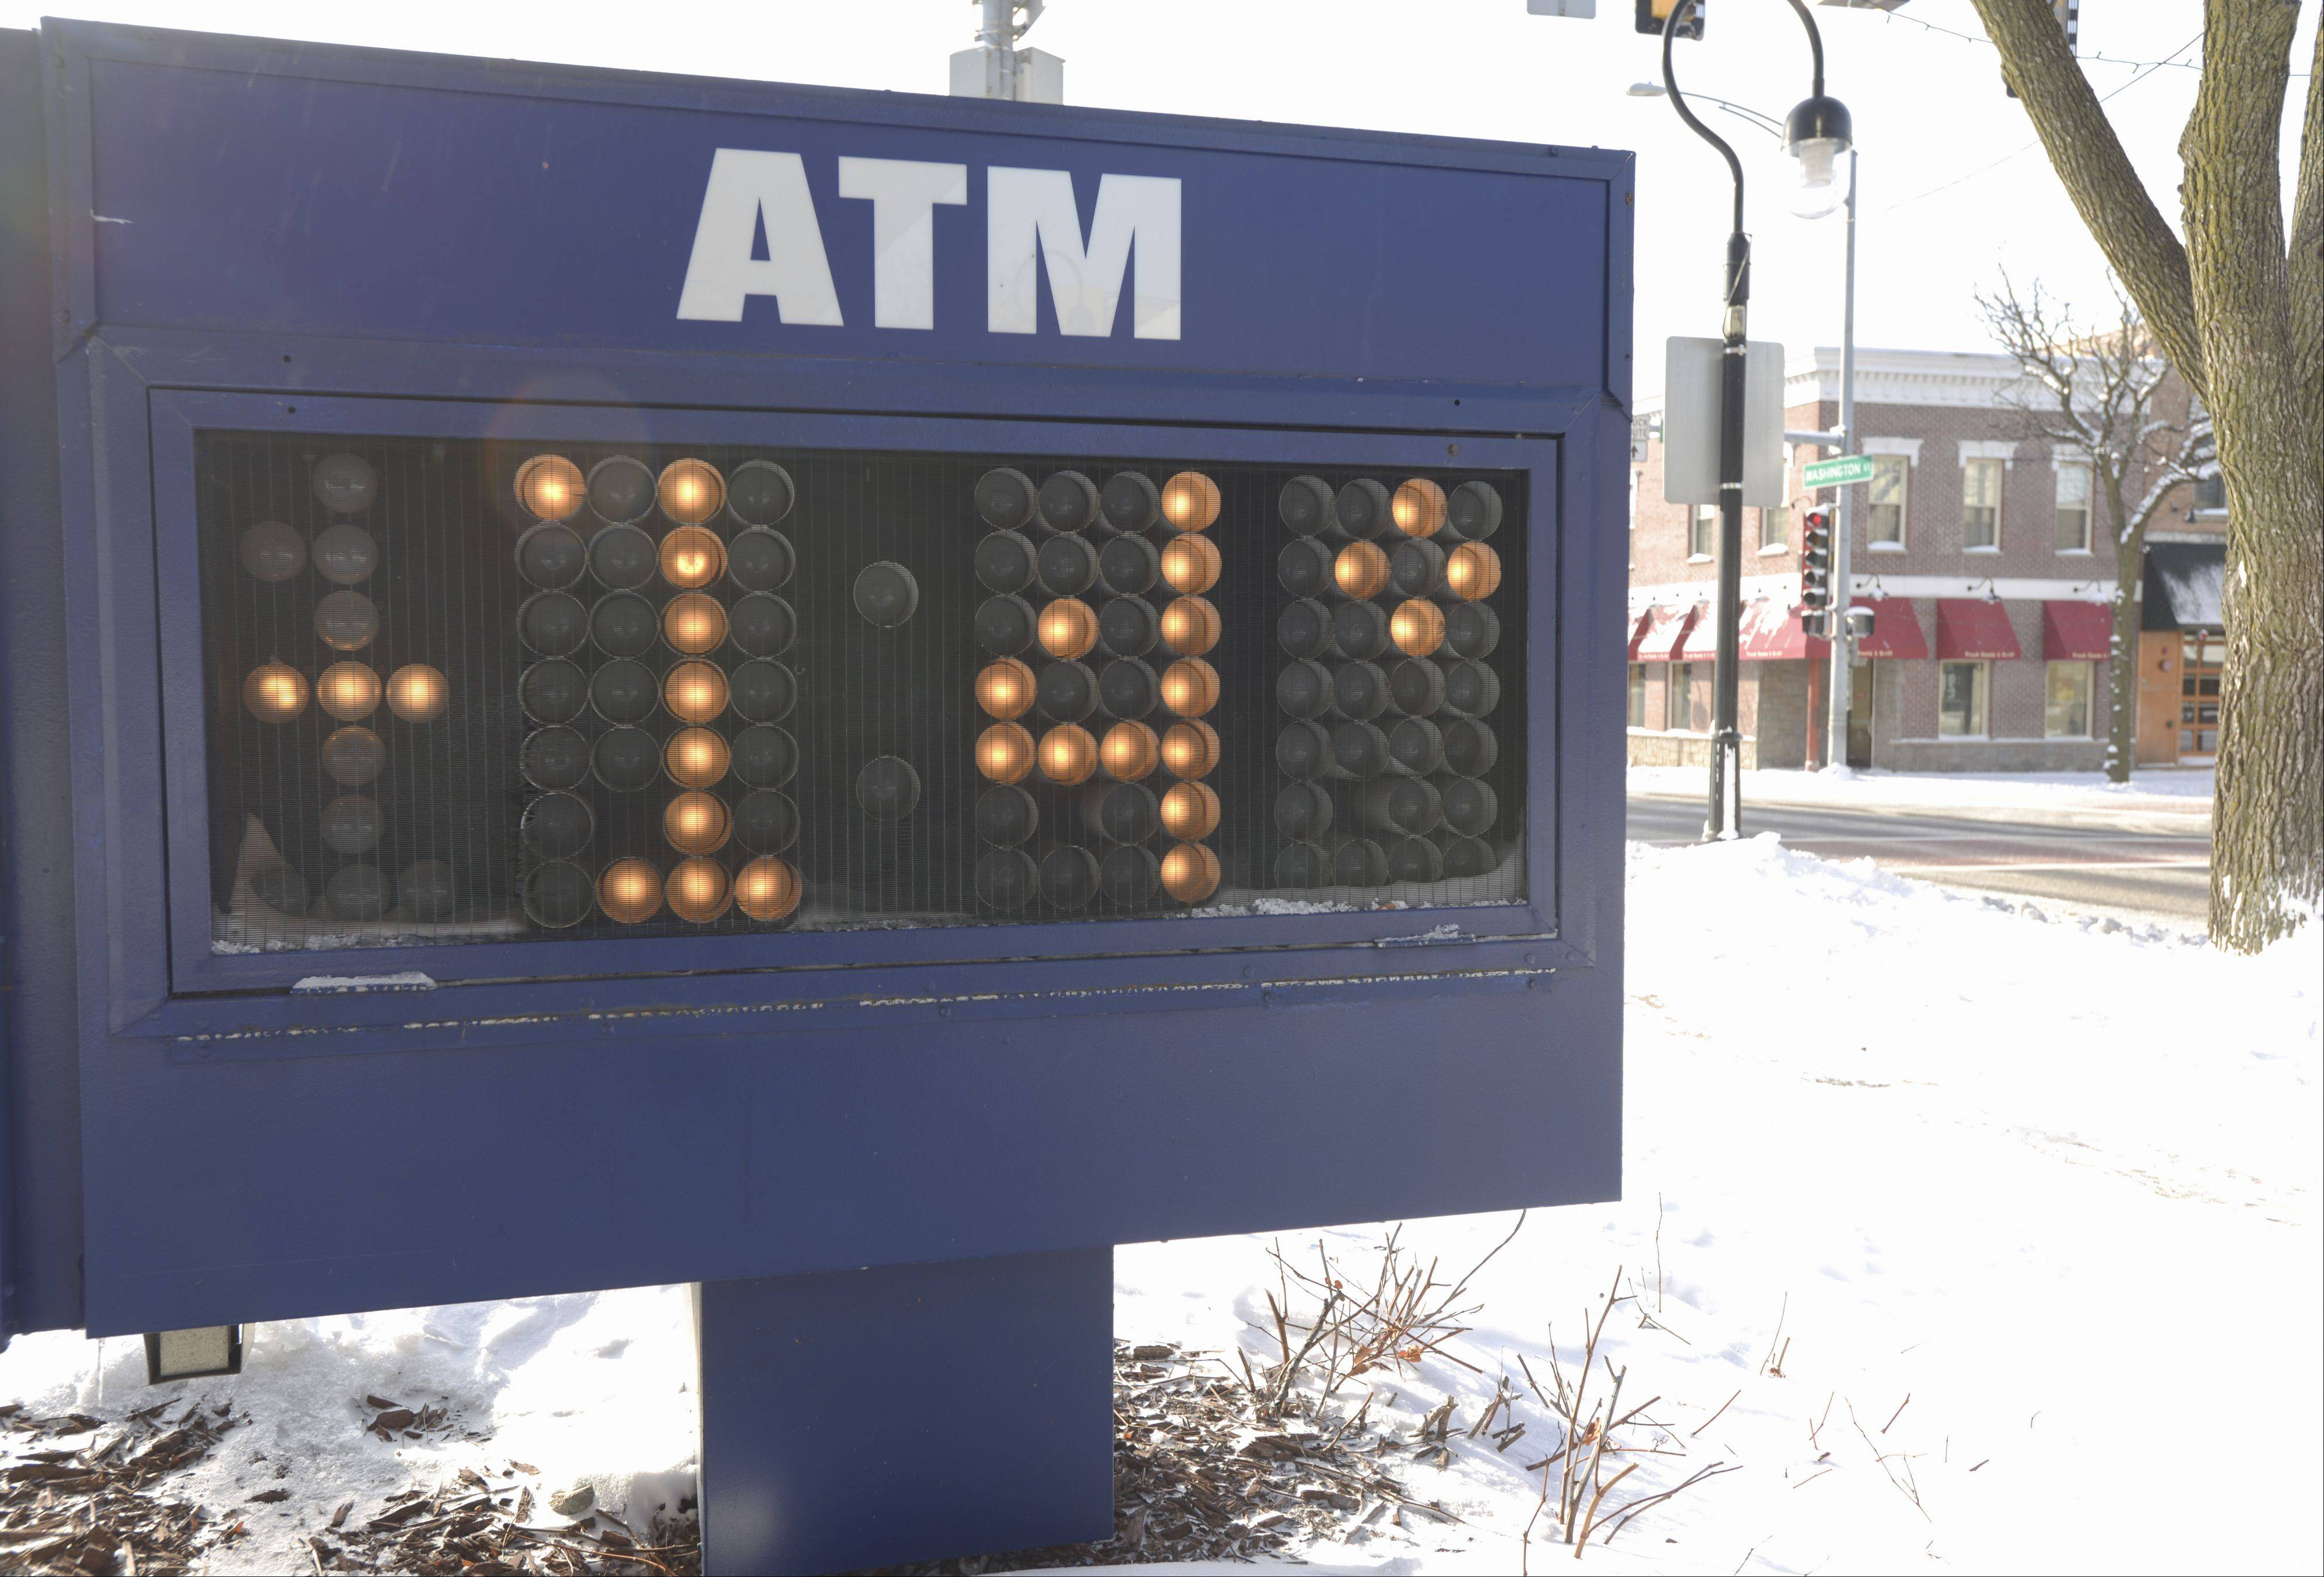 How cold was it? A sign in downtown Naperville put the temperature at at minus 14 degrees just before 10 a.m.